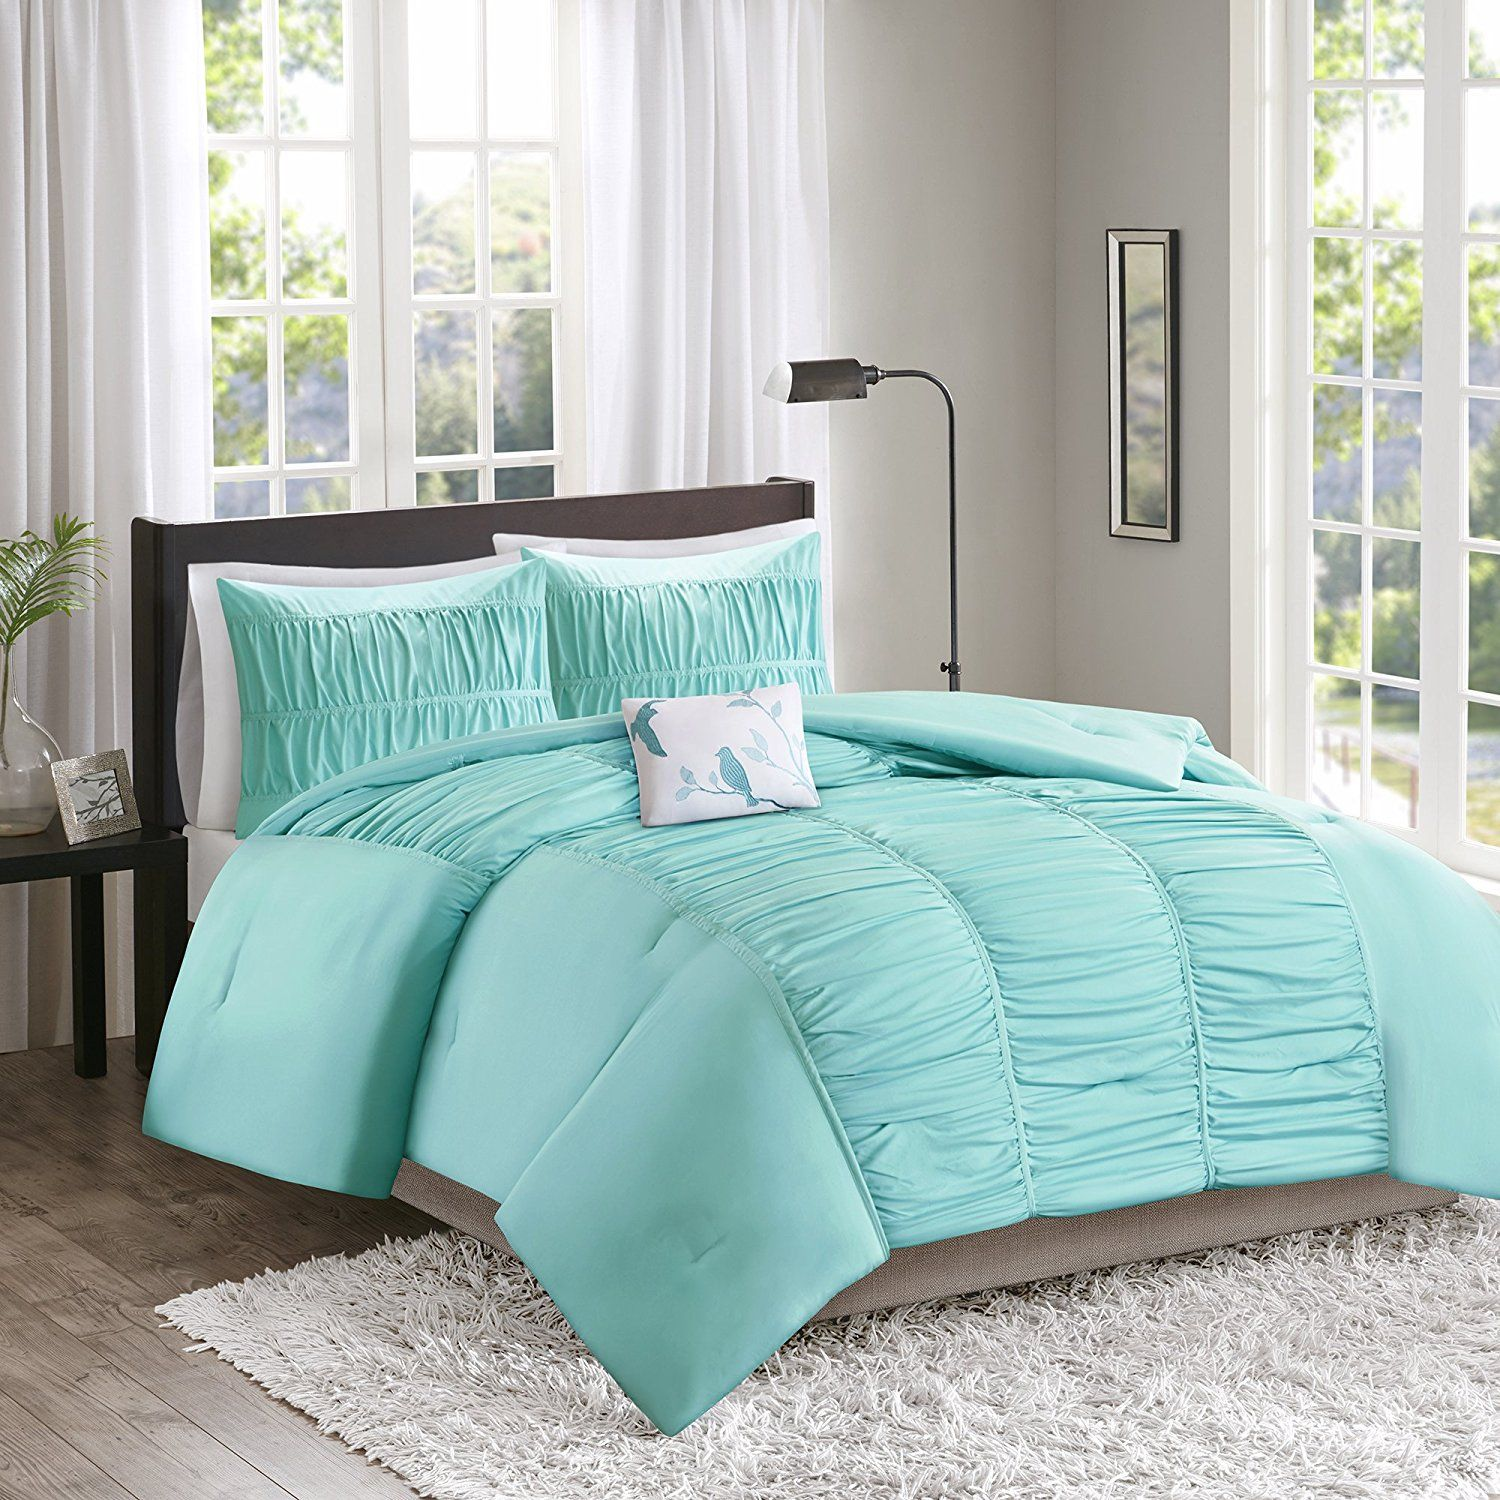 Amazon Comforter Set  4 Piece Aqua Blue Just $1499